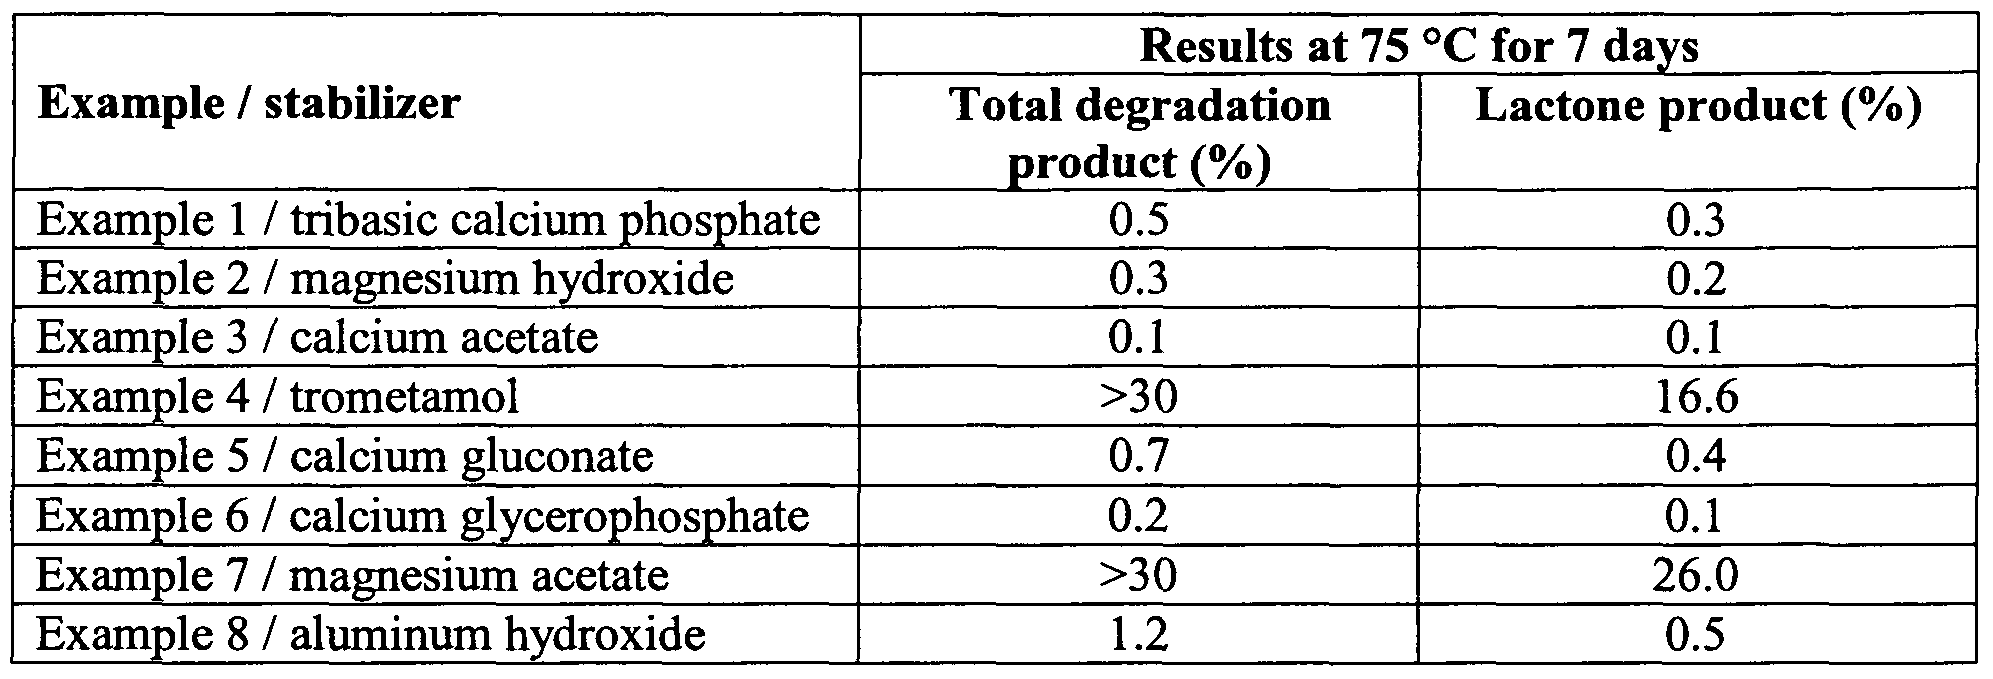 Wo2008035128a1 Pharmaceutical Compositions Containing Rosuvastatin